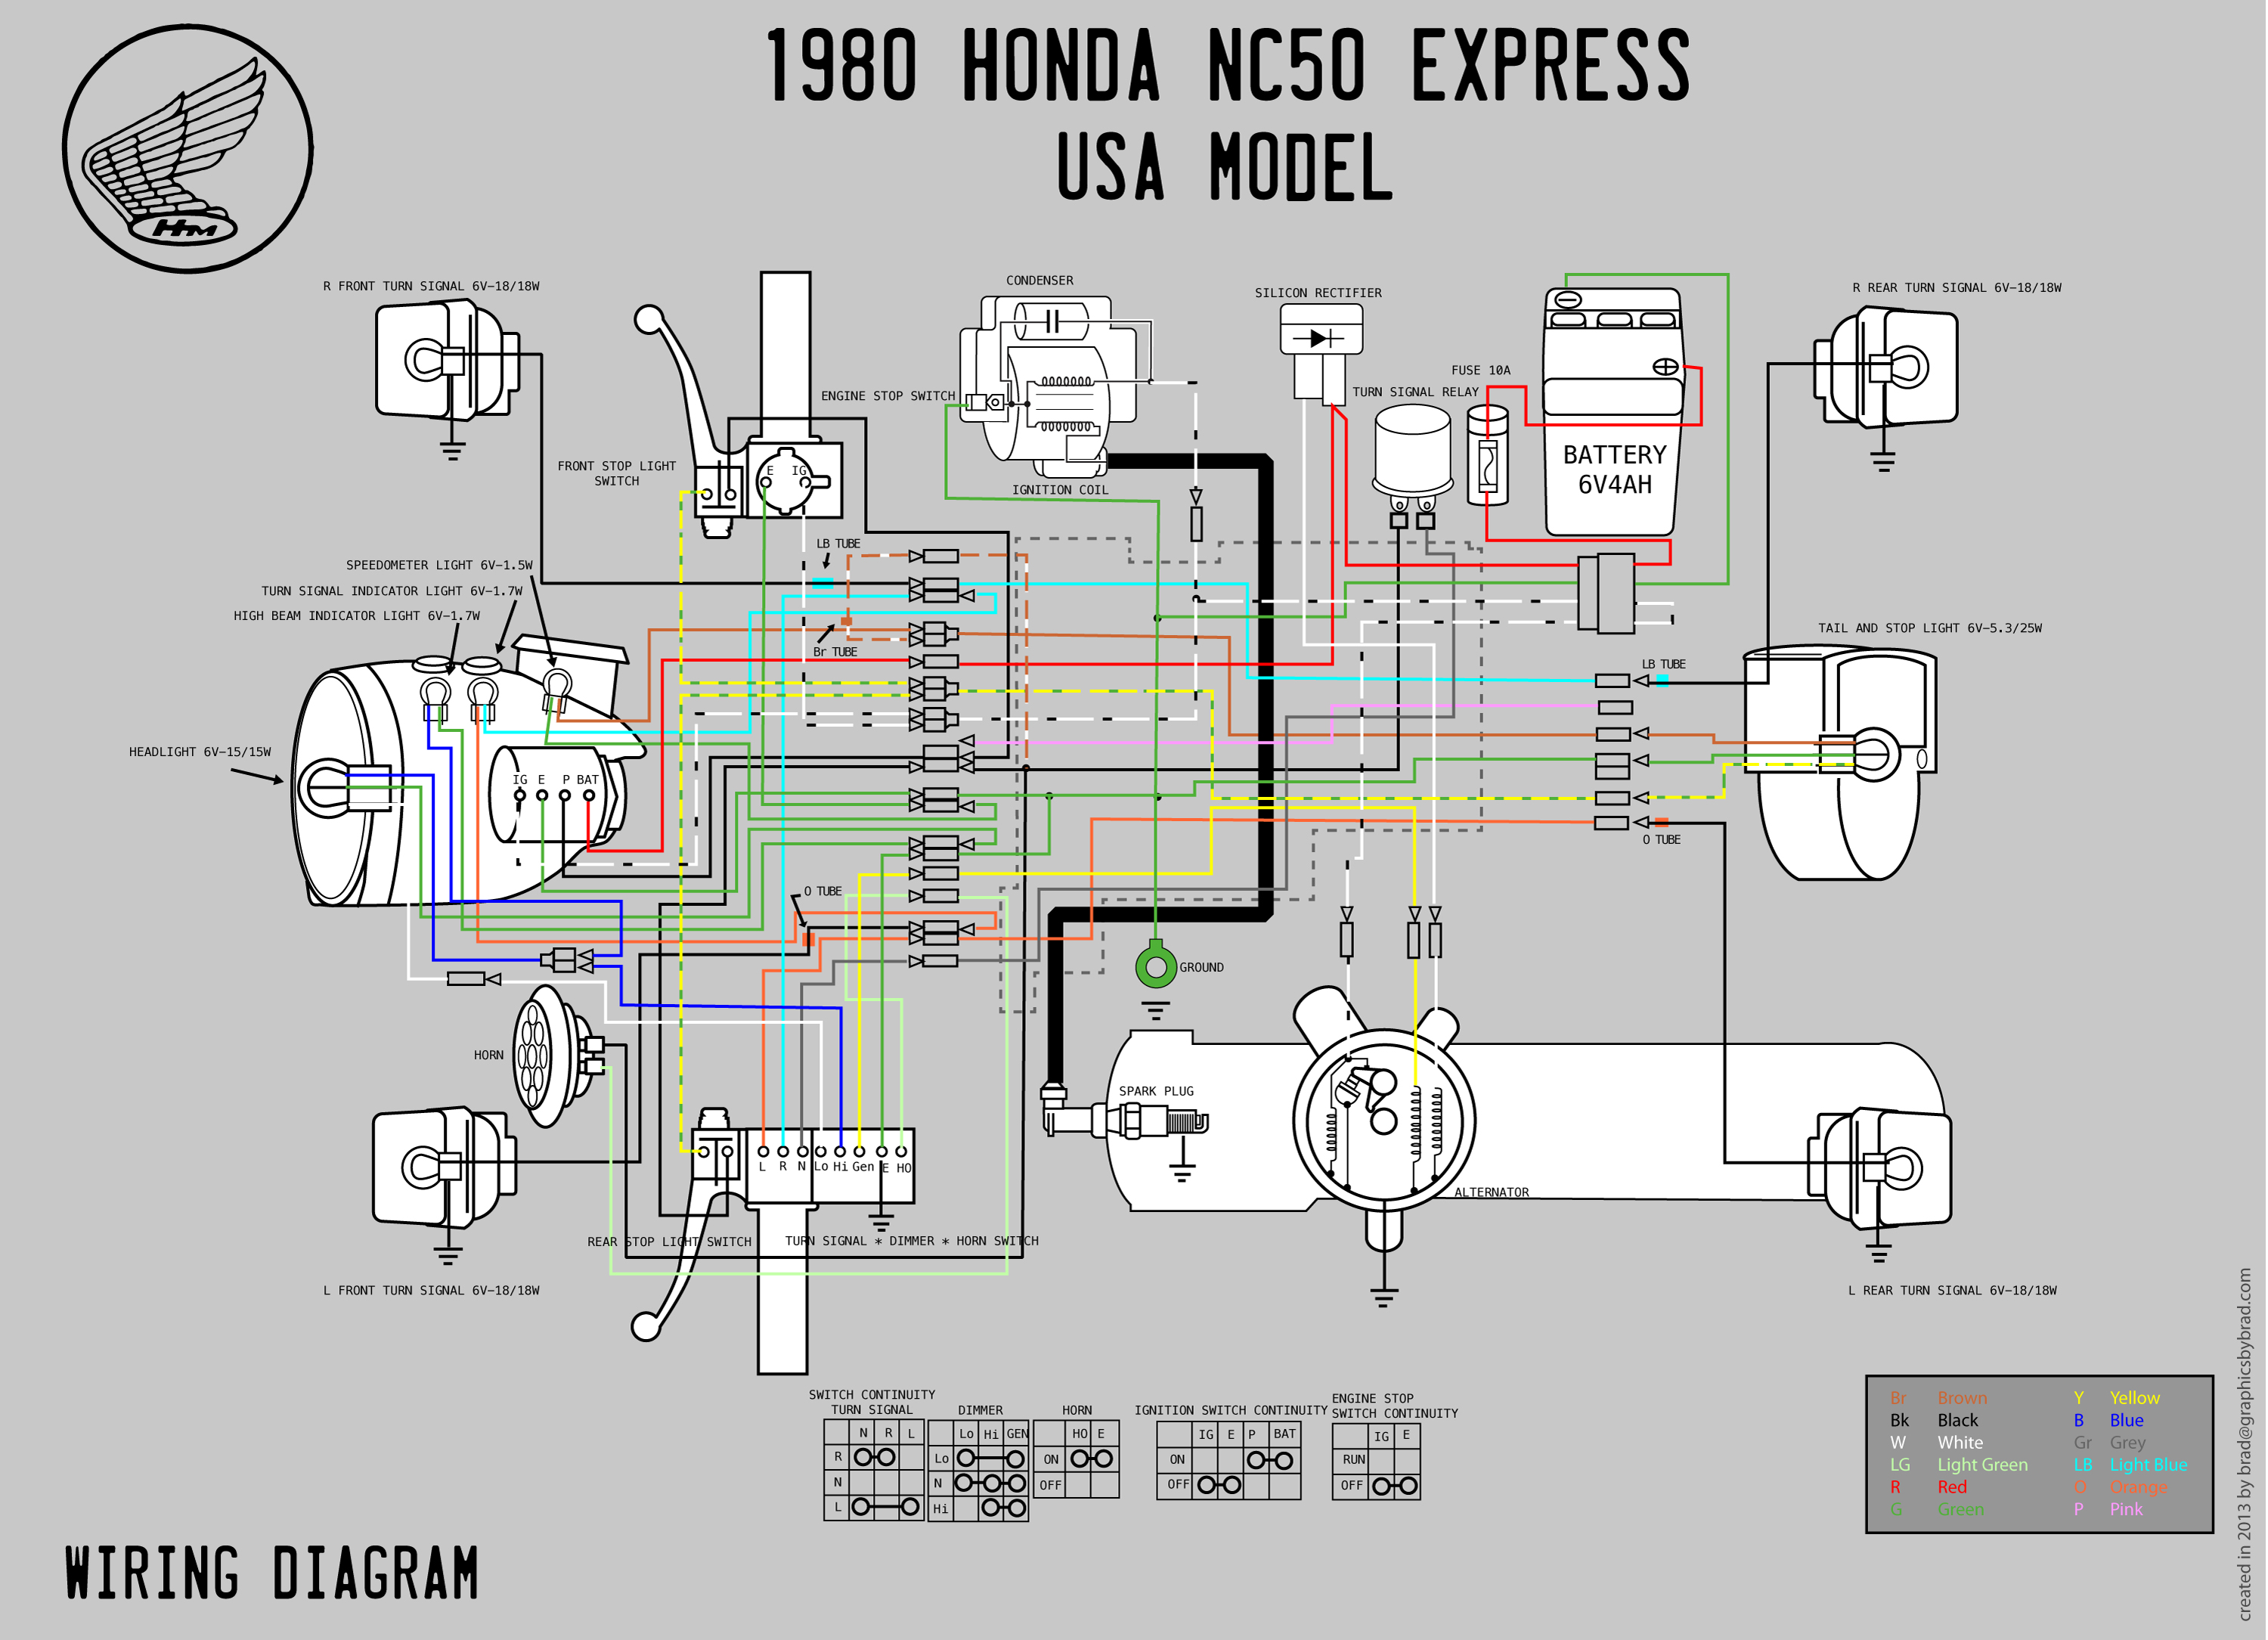 1980 honda nc50 wiring diagram moped wiki rh mopedarmy com Tao Tao 50Cc Moped Wiring-Diagram 150Cc Scooter Wiring Diagram